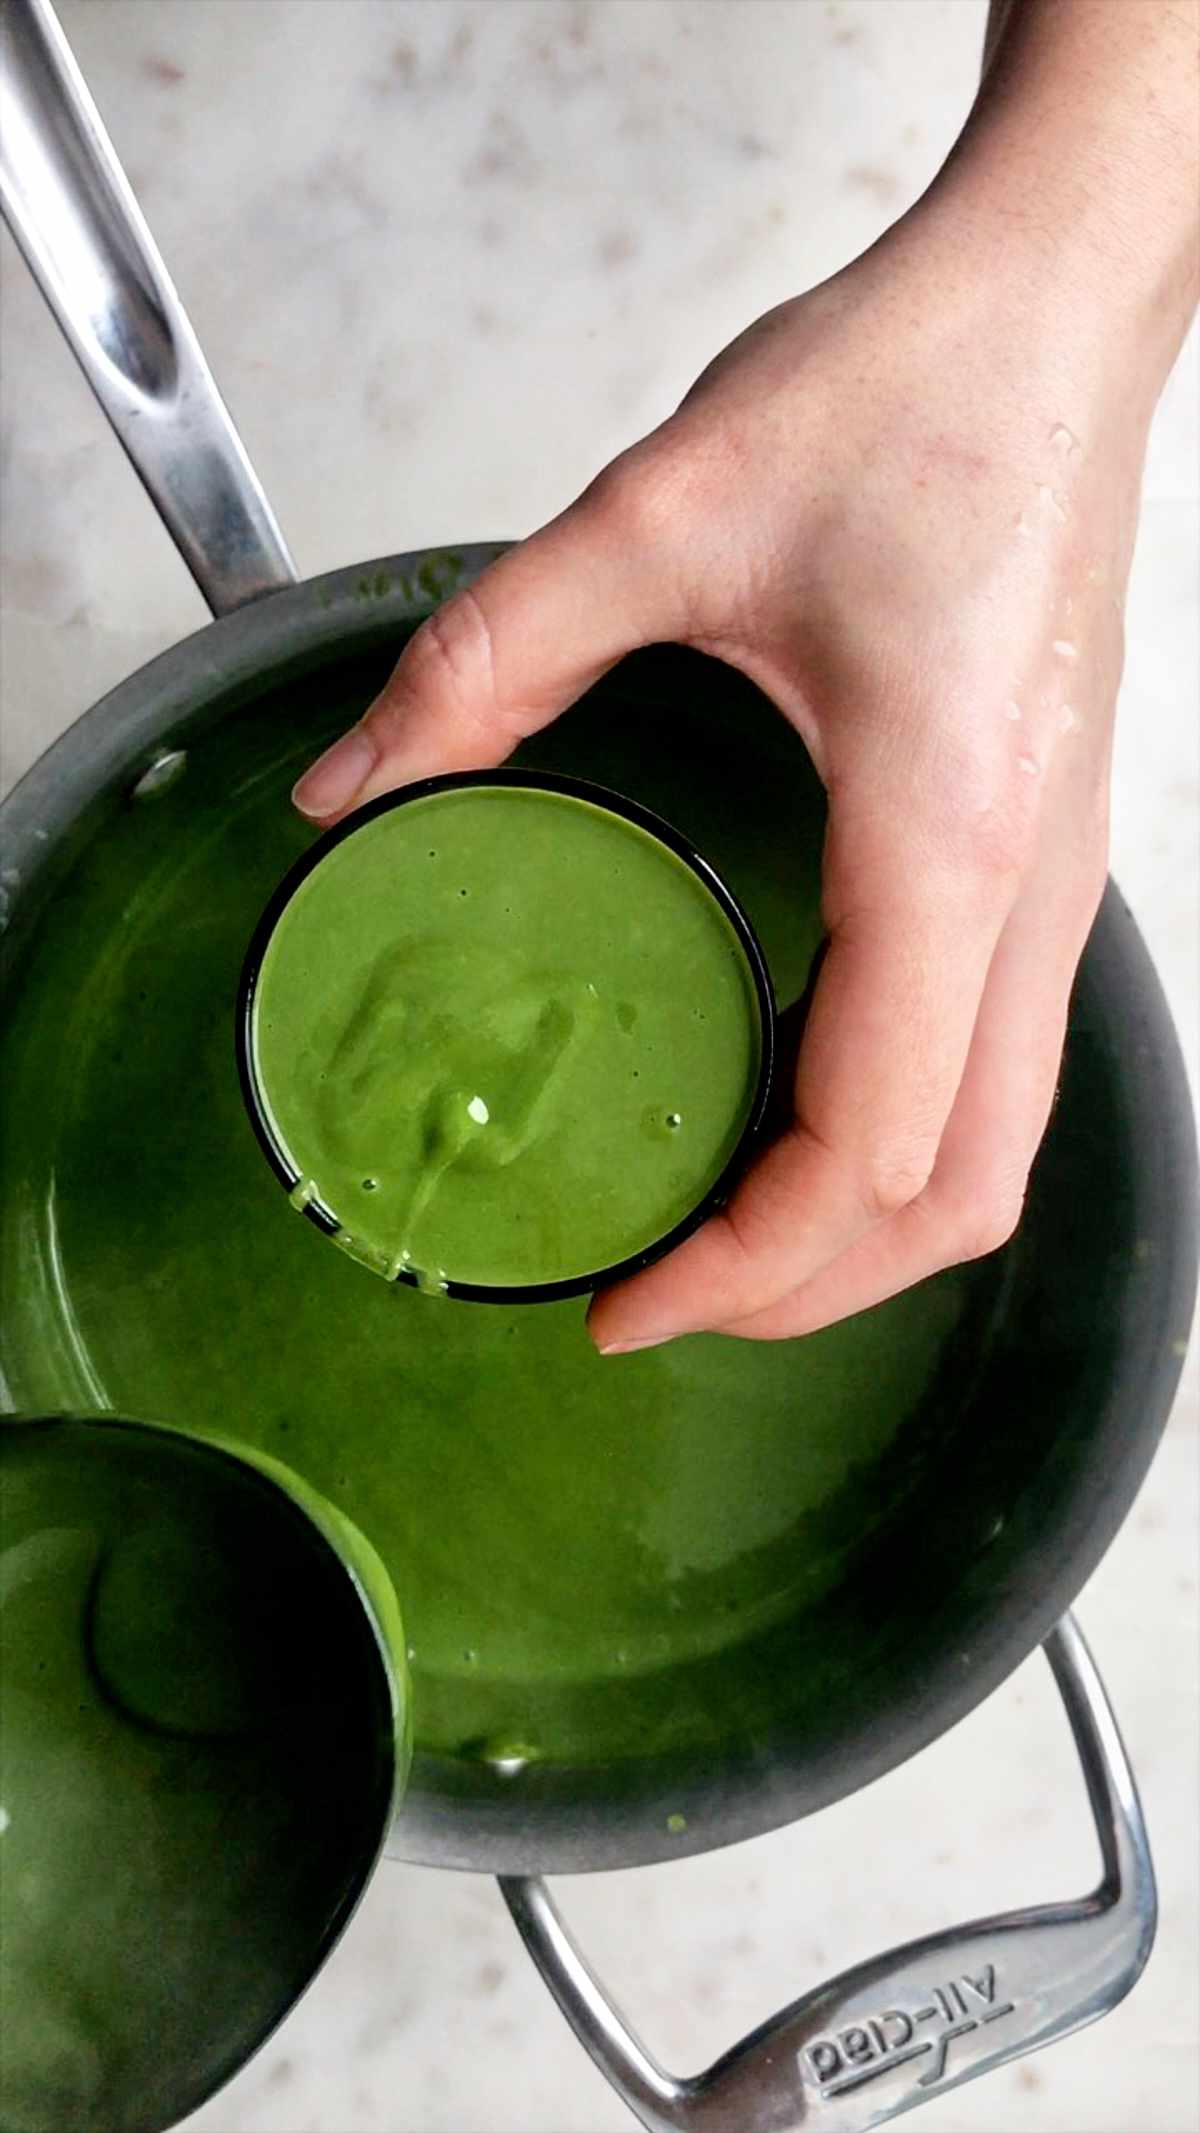 Cup full of warm green pudding.